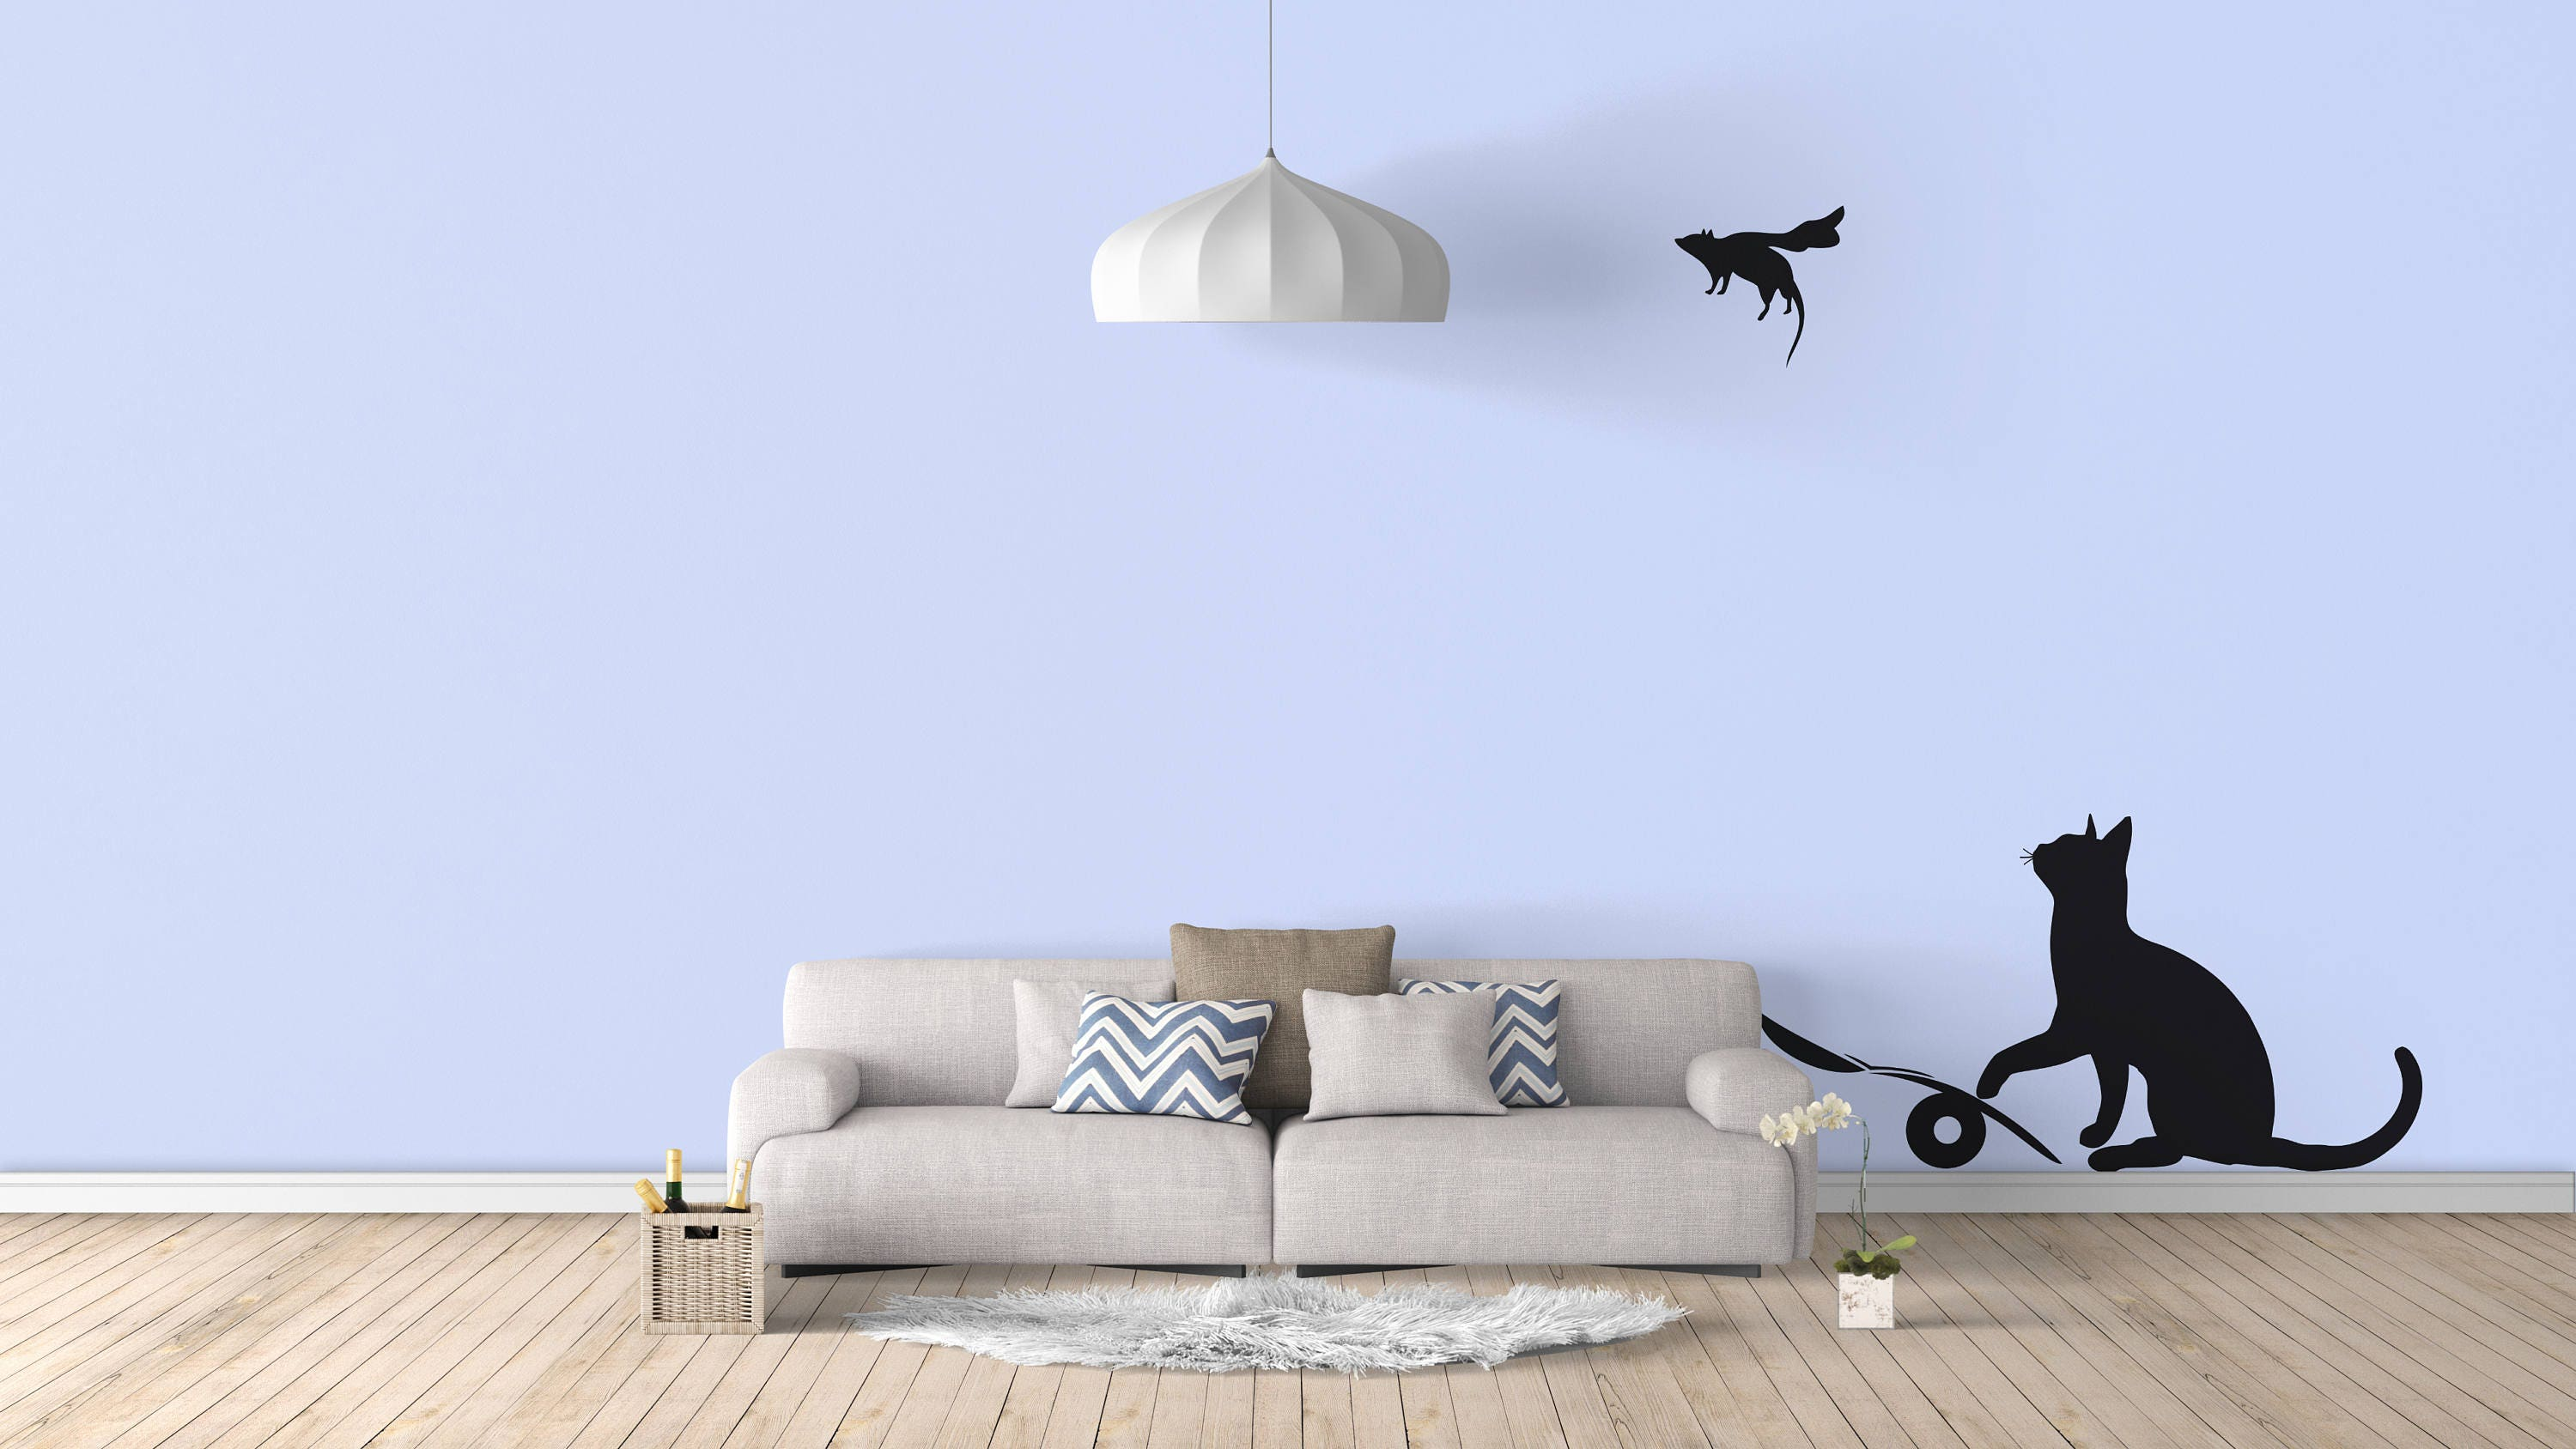 Banksy cat and mouse wall decal sticker banksy style urban art 1 amipublicfo Gallery